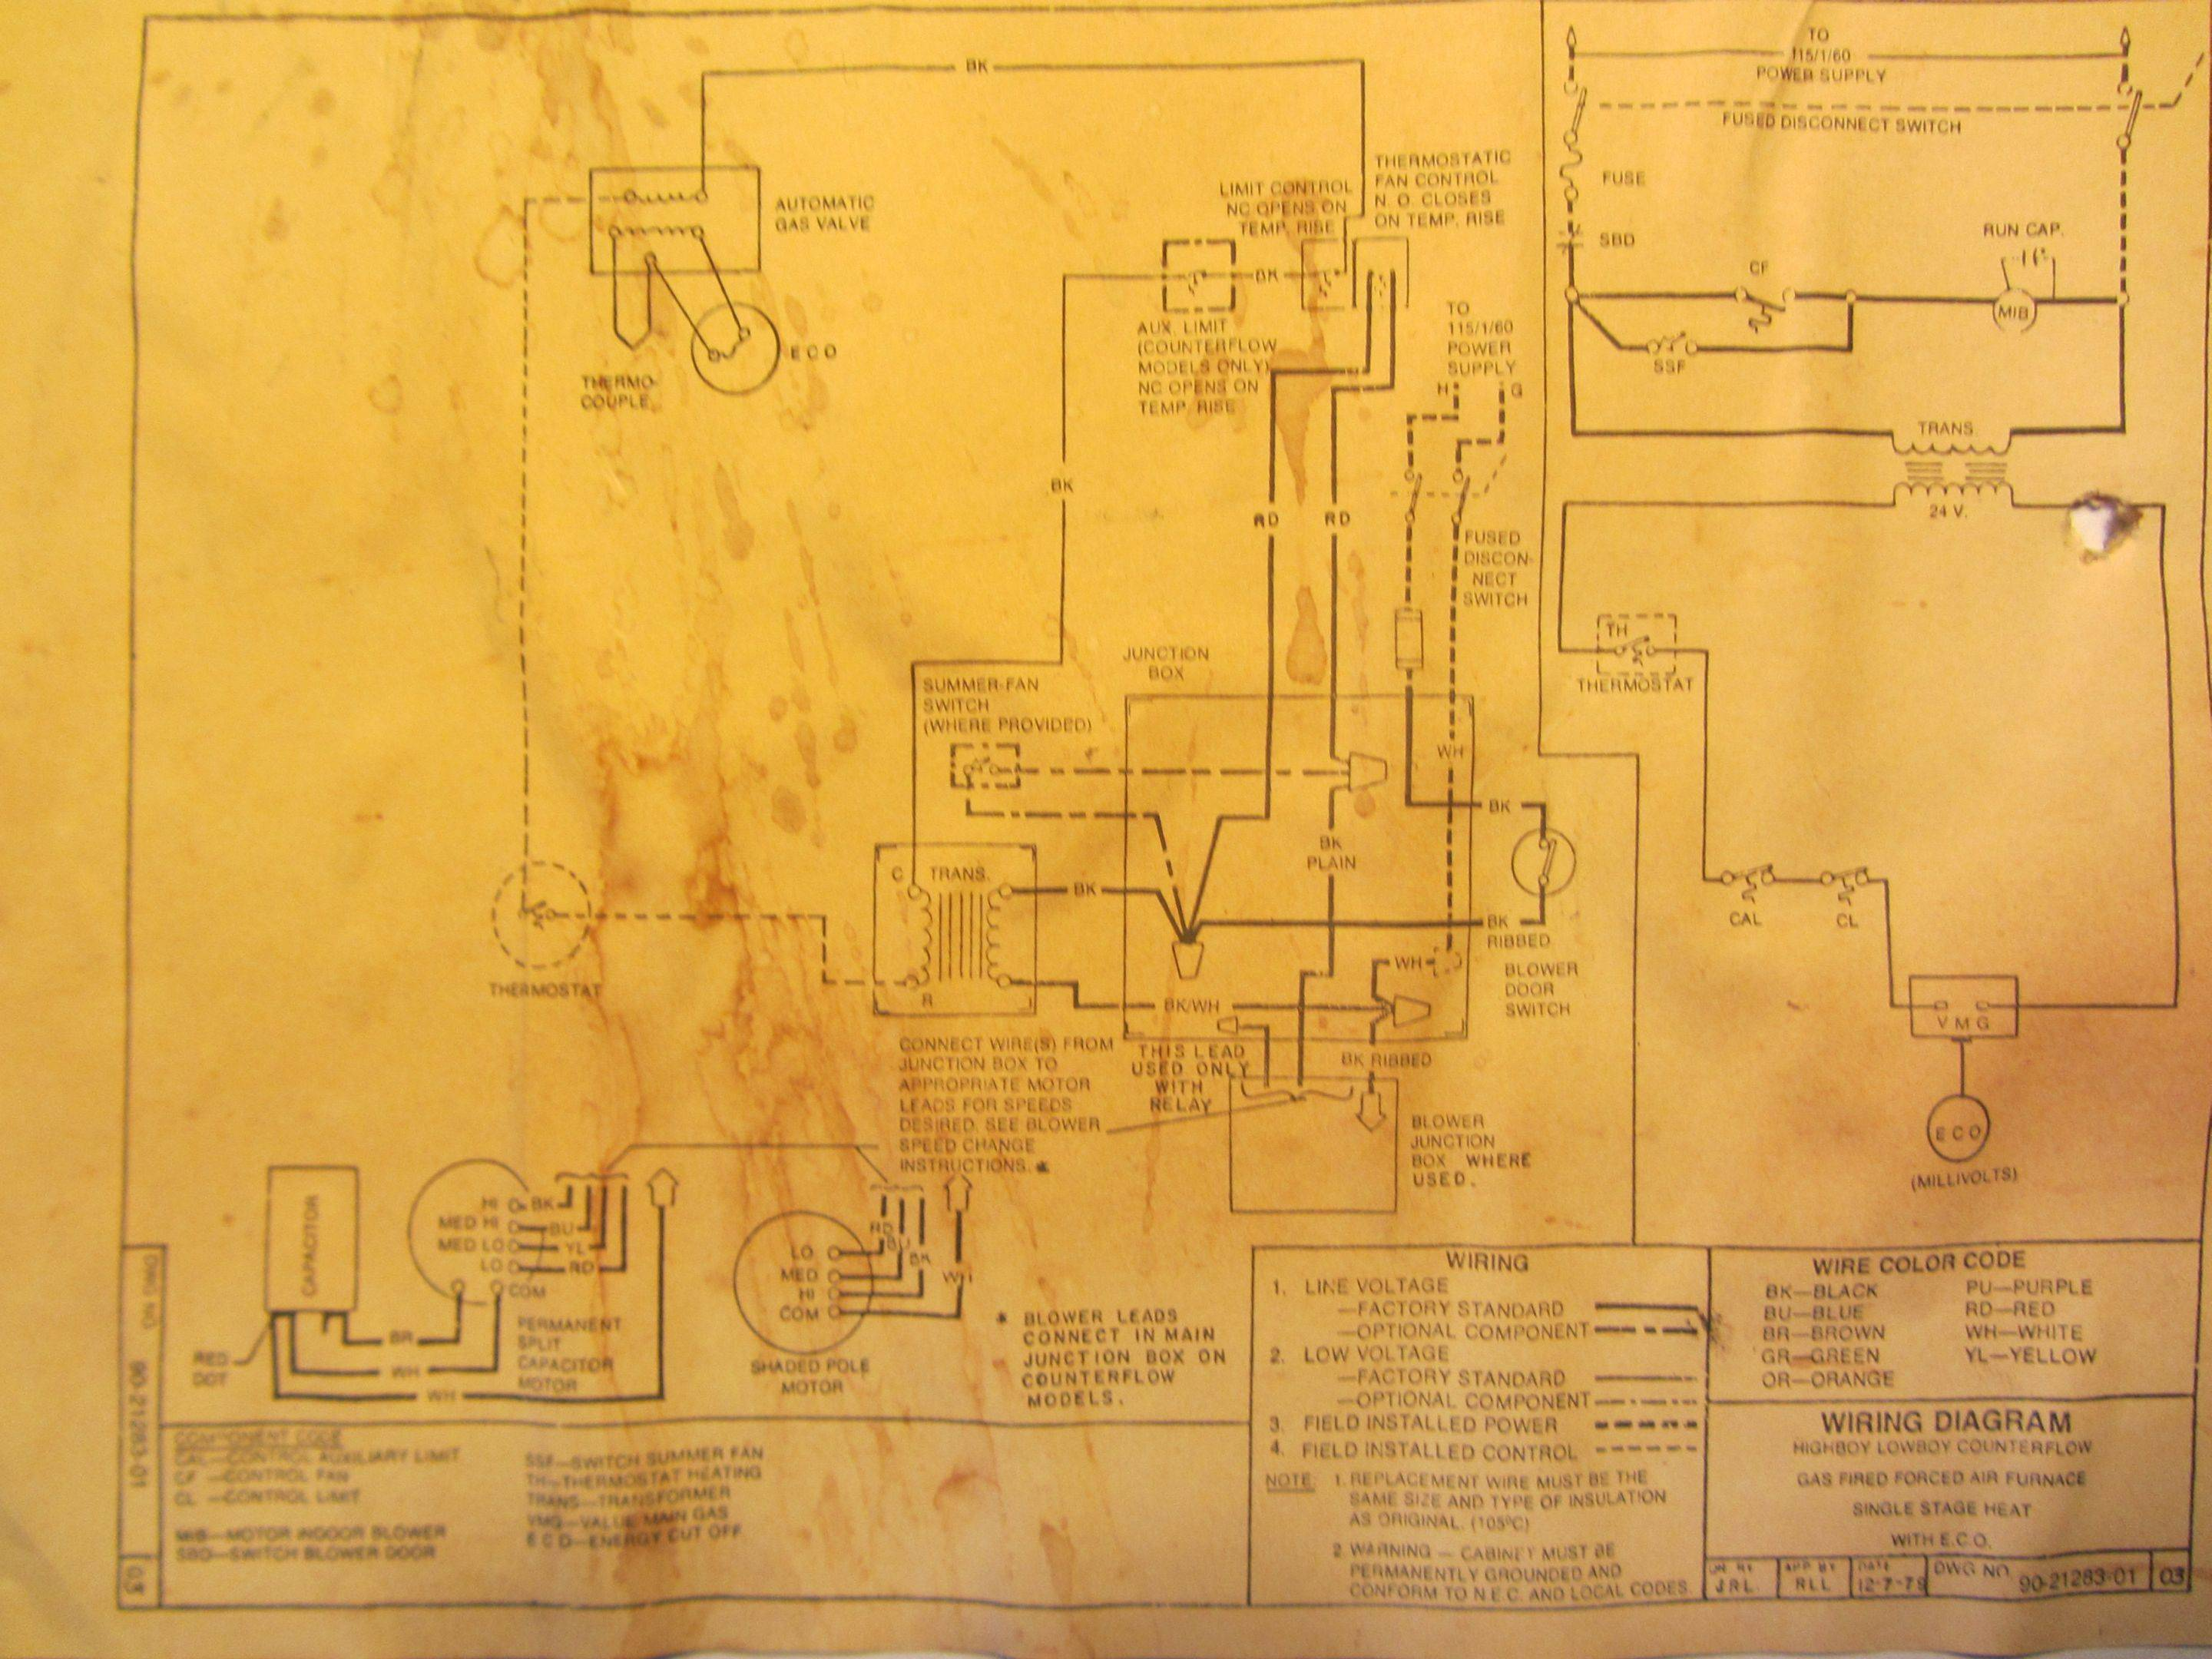 Ruud Air Conditioner Capacitor Wiring Diagram Hvac Add A C Wire To 25 Year Old Rheem Furnace Home